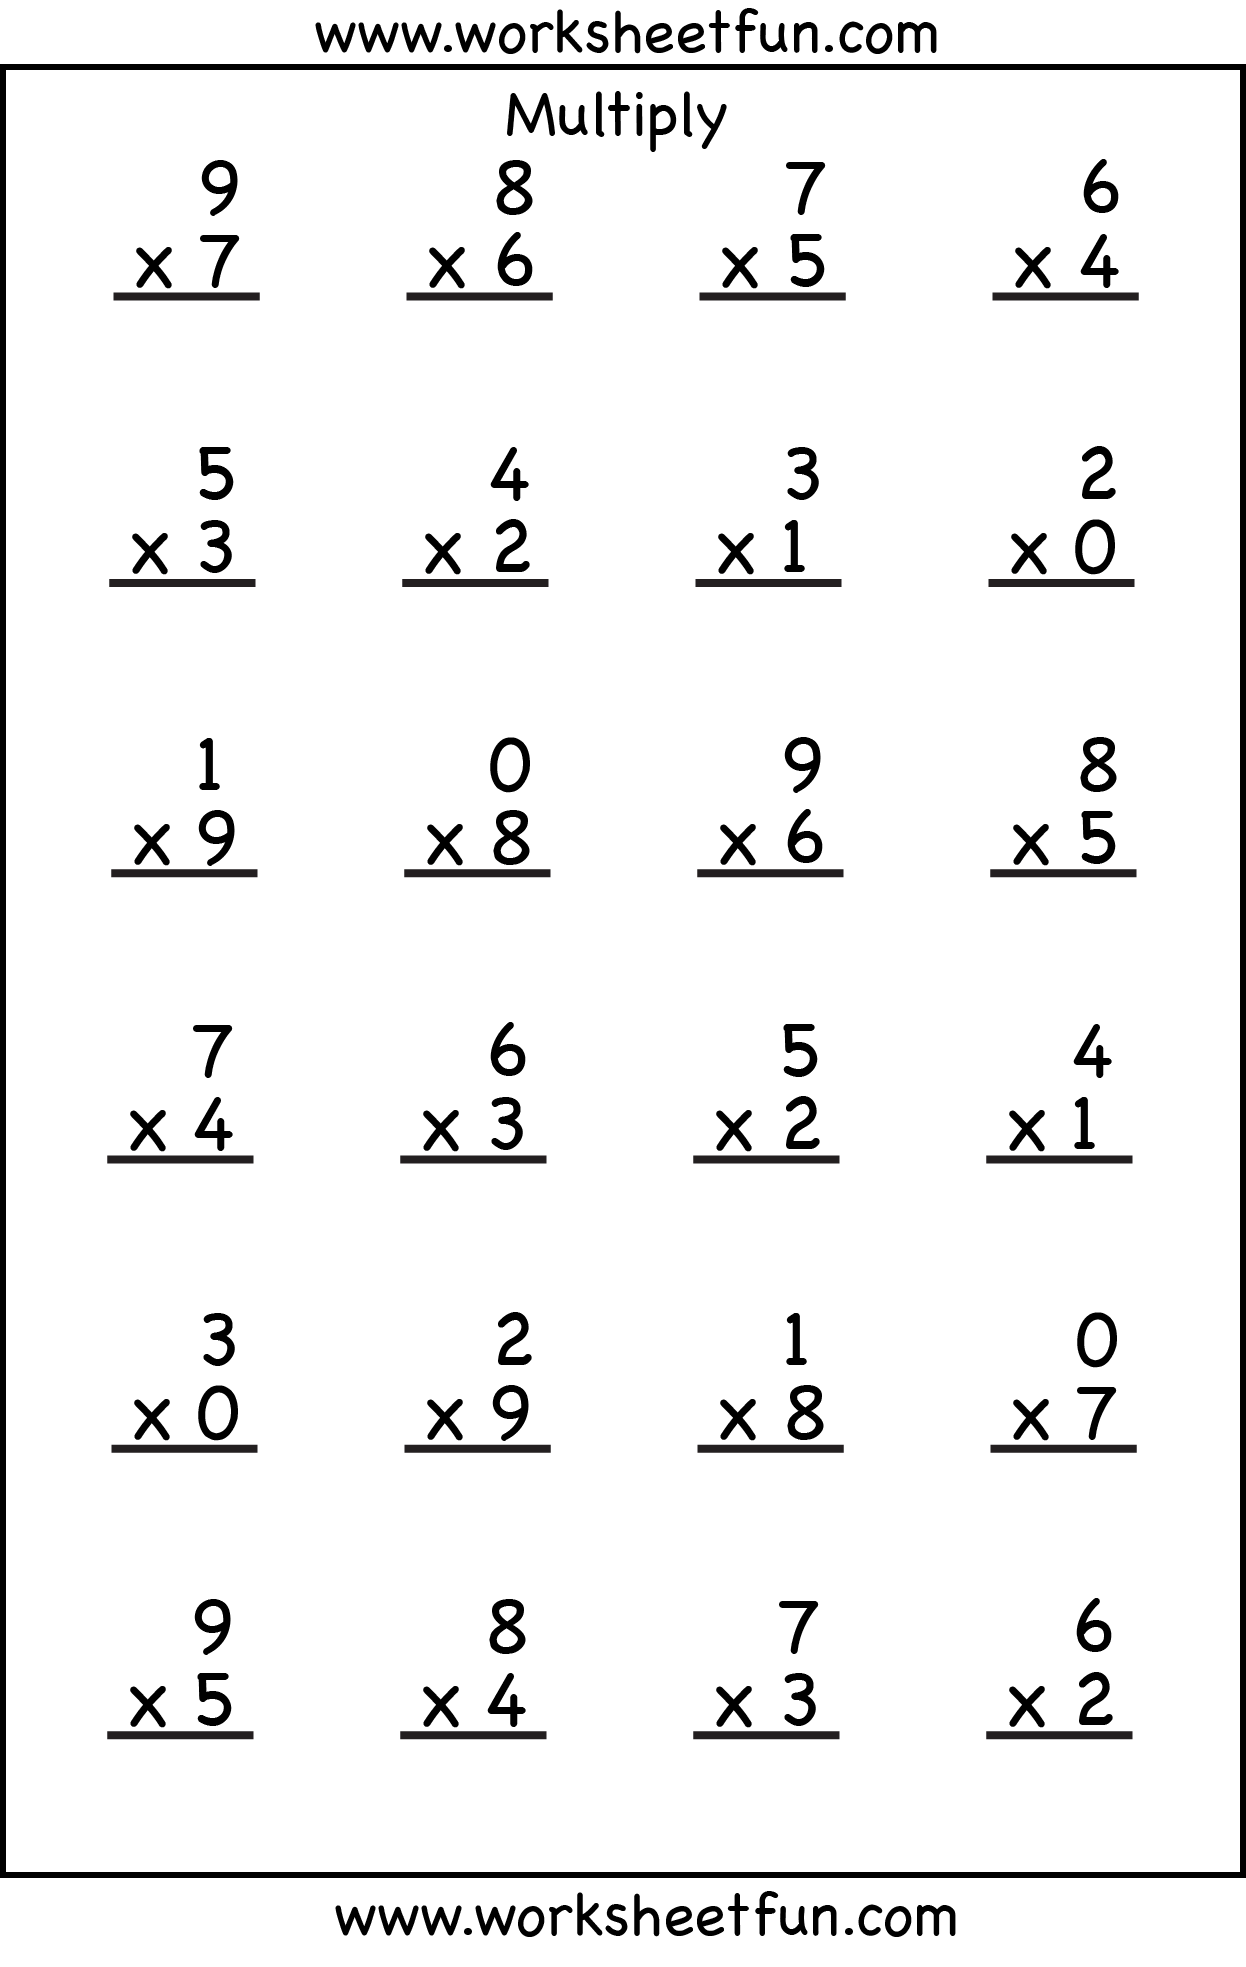 Single Digit Multiplication Worksheets – How to Do Long Multiplication Worksheets